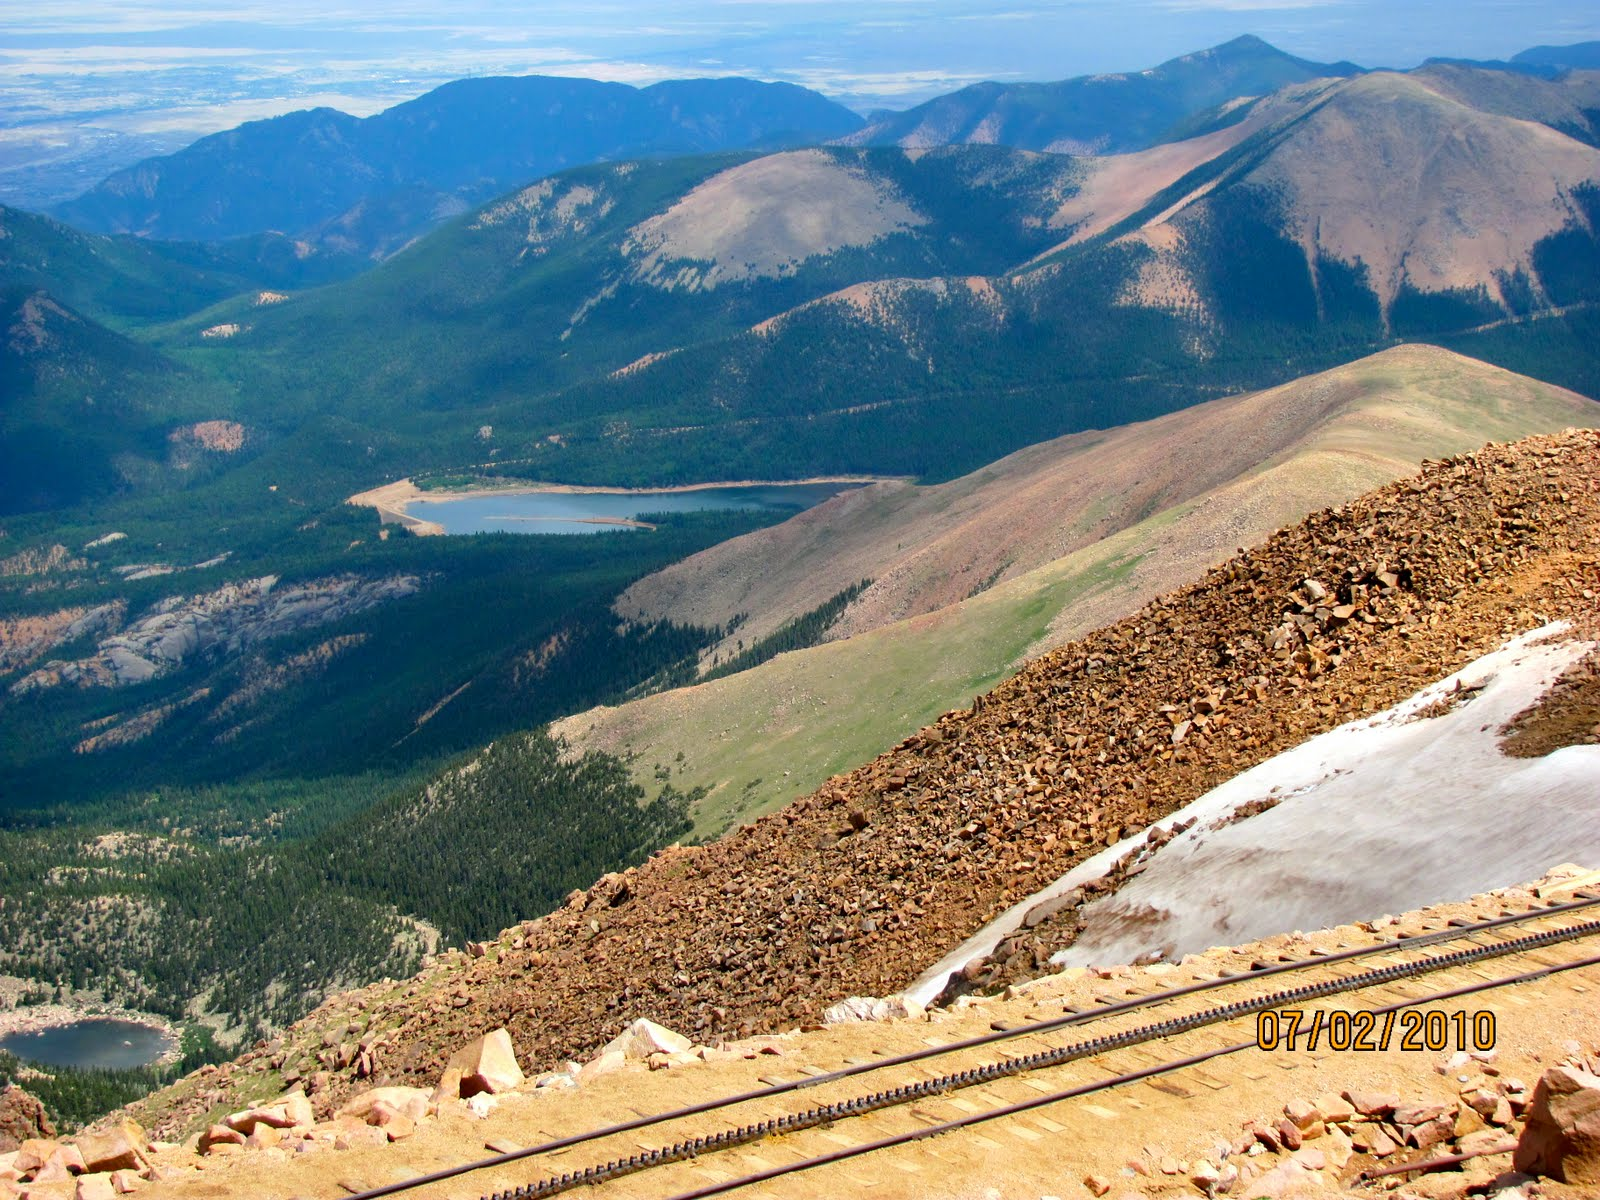 We Had About 40 Minutes On Top Of Pikes Peak Before To Again Board The Train For Long Trip Back But Not Took Obligatory Photo Ops